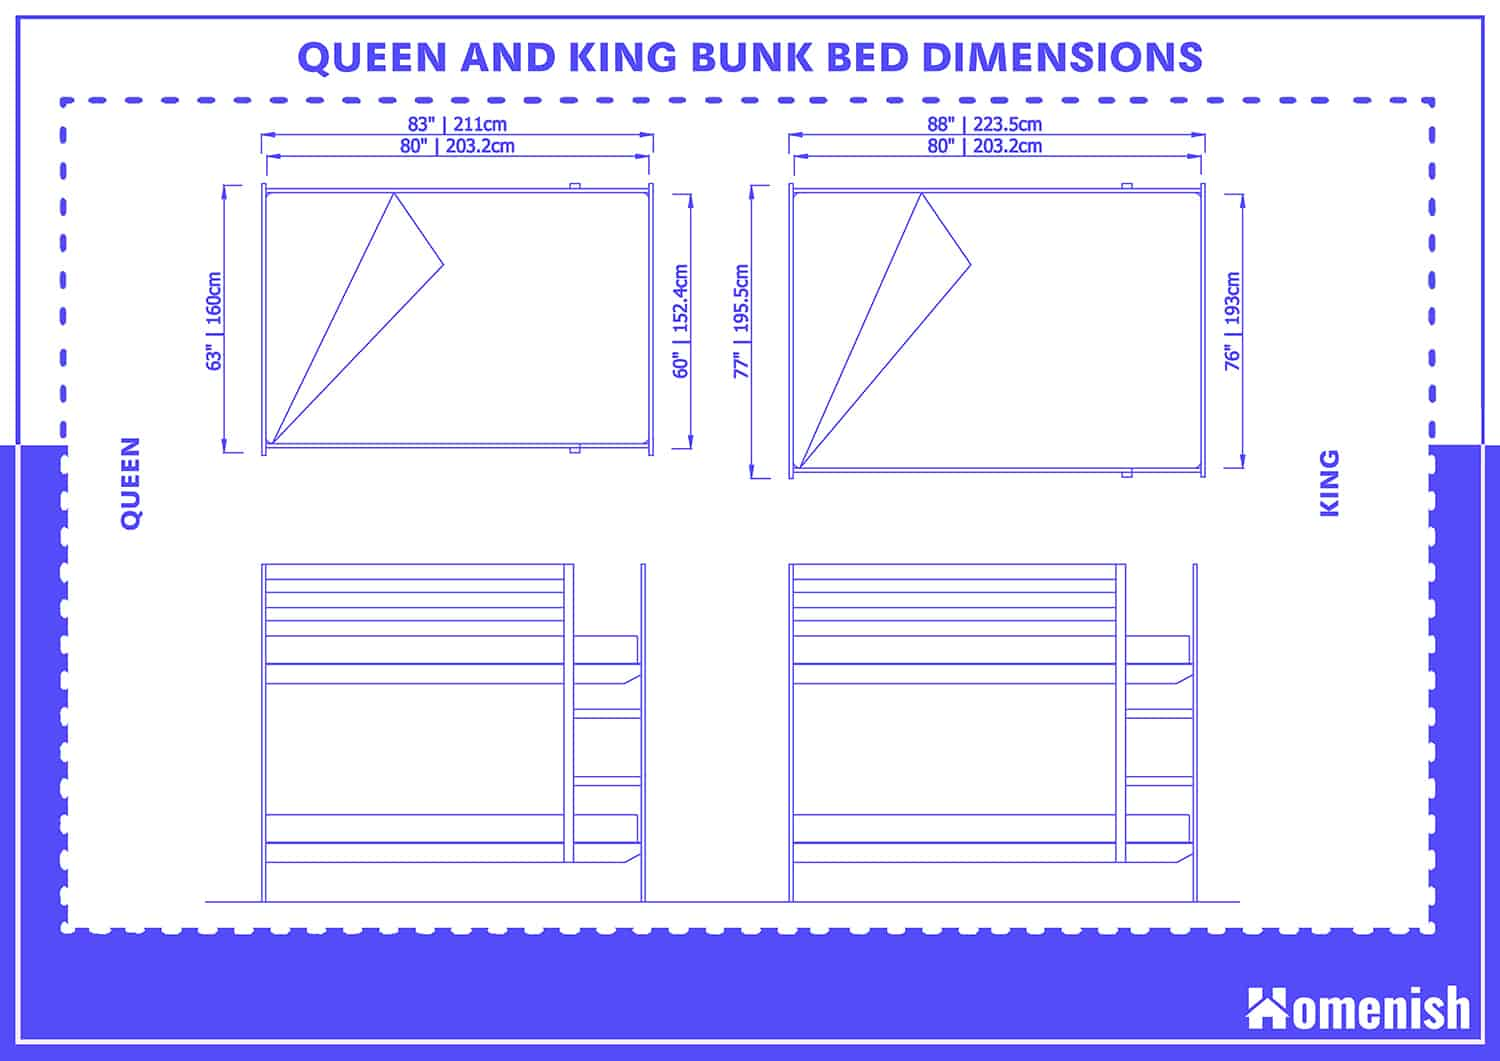 Queen and King Bunk Bed Dimensions